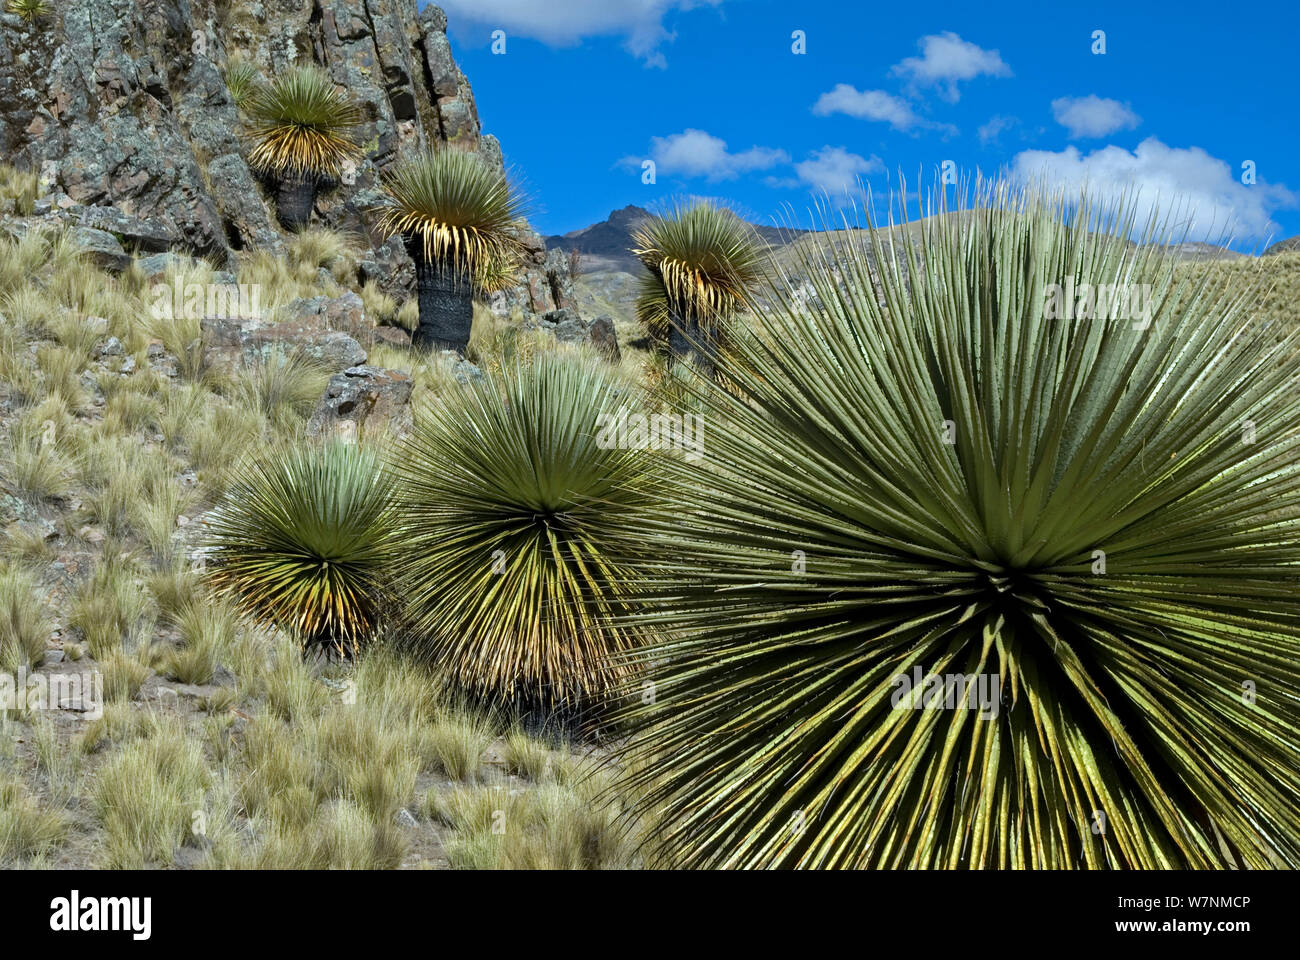 Queen of the Andes (Puya raimondii) forest. Peru. June 2012. Stock Photo